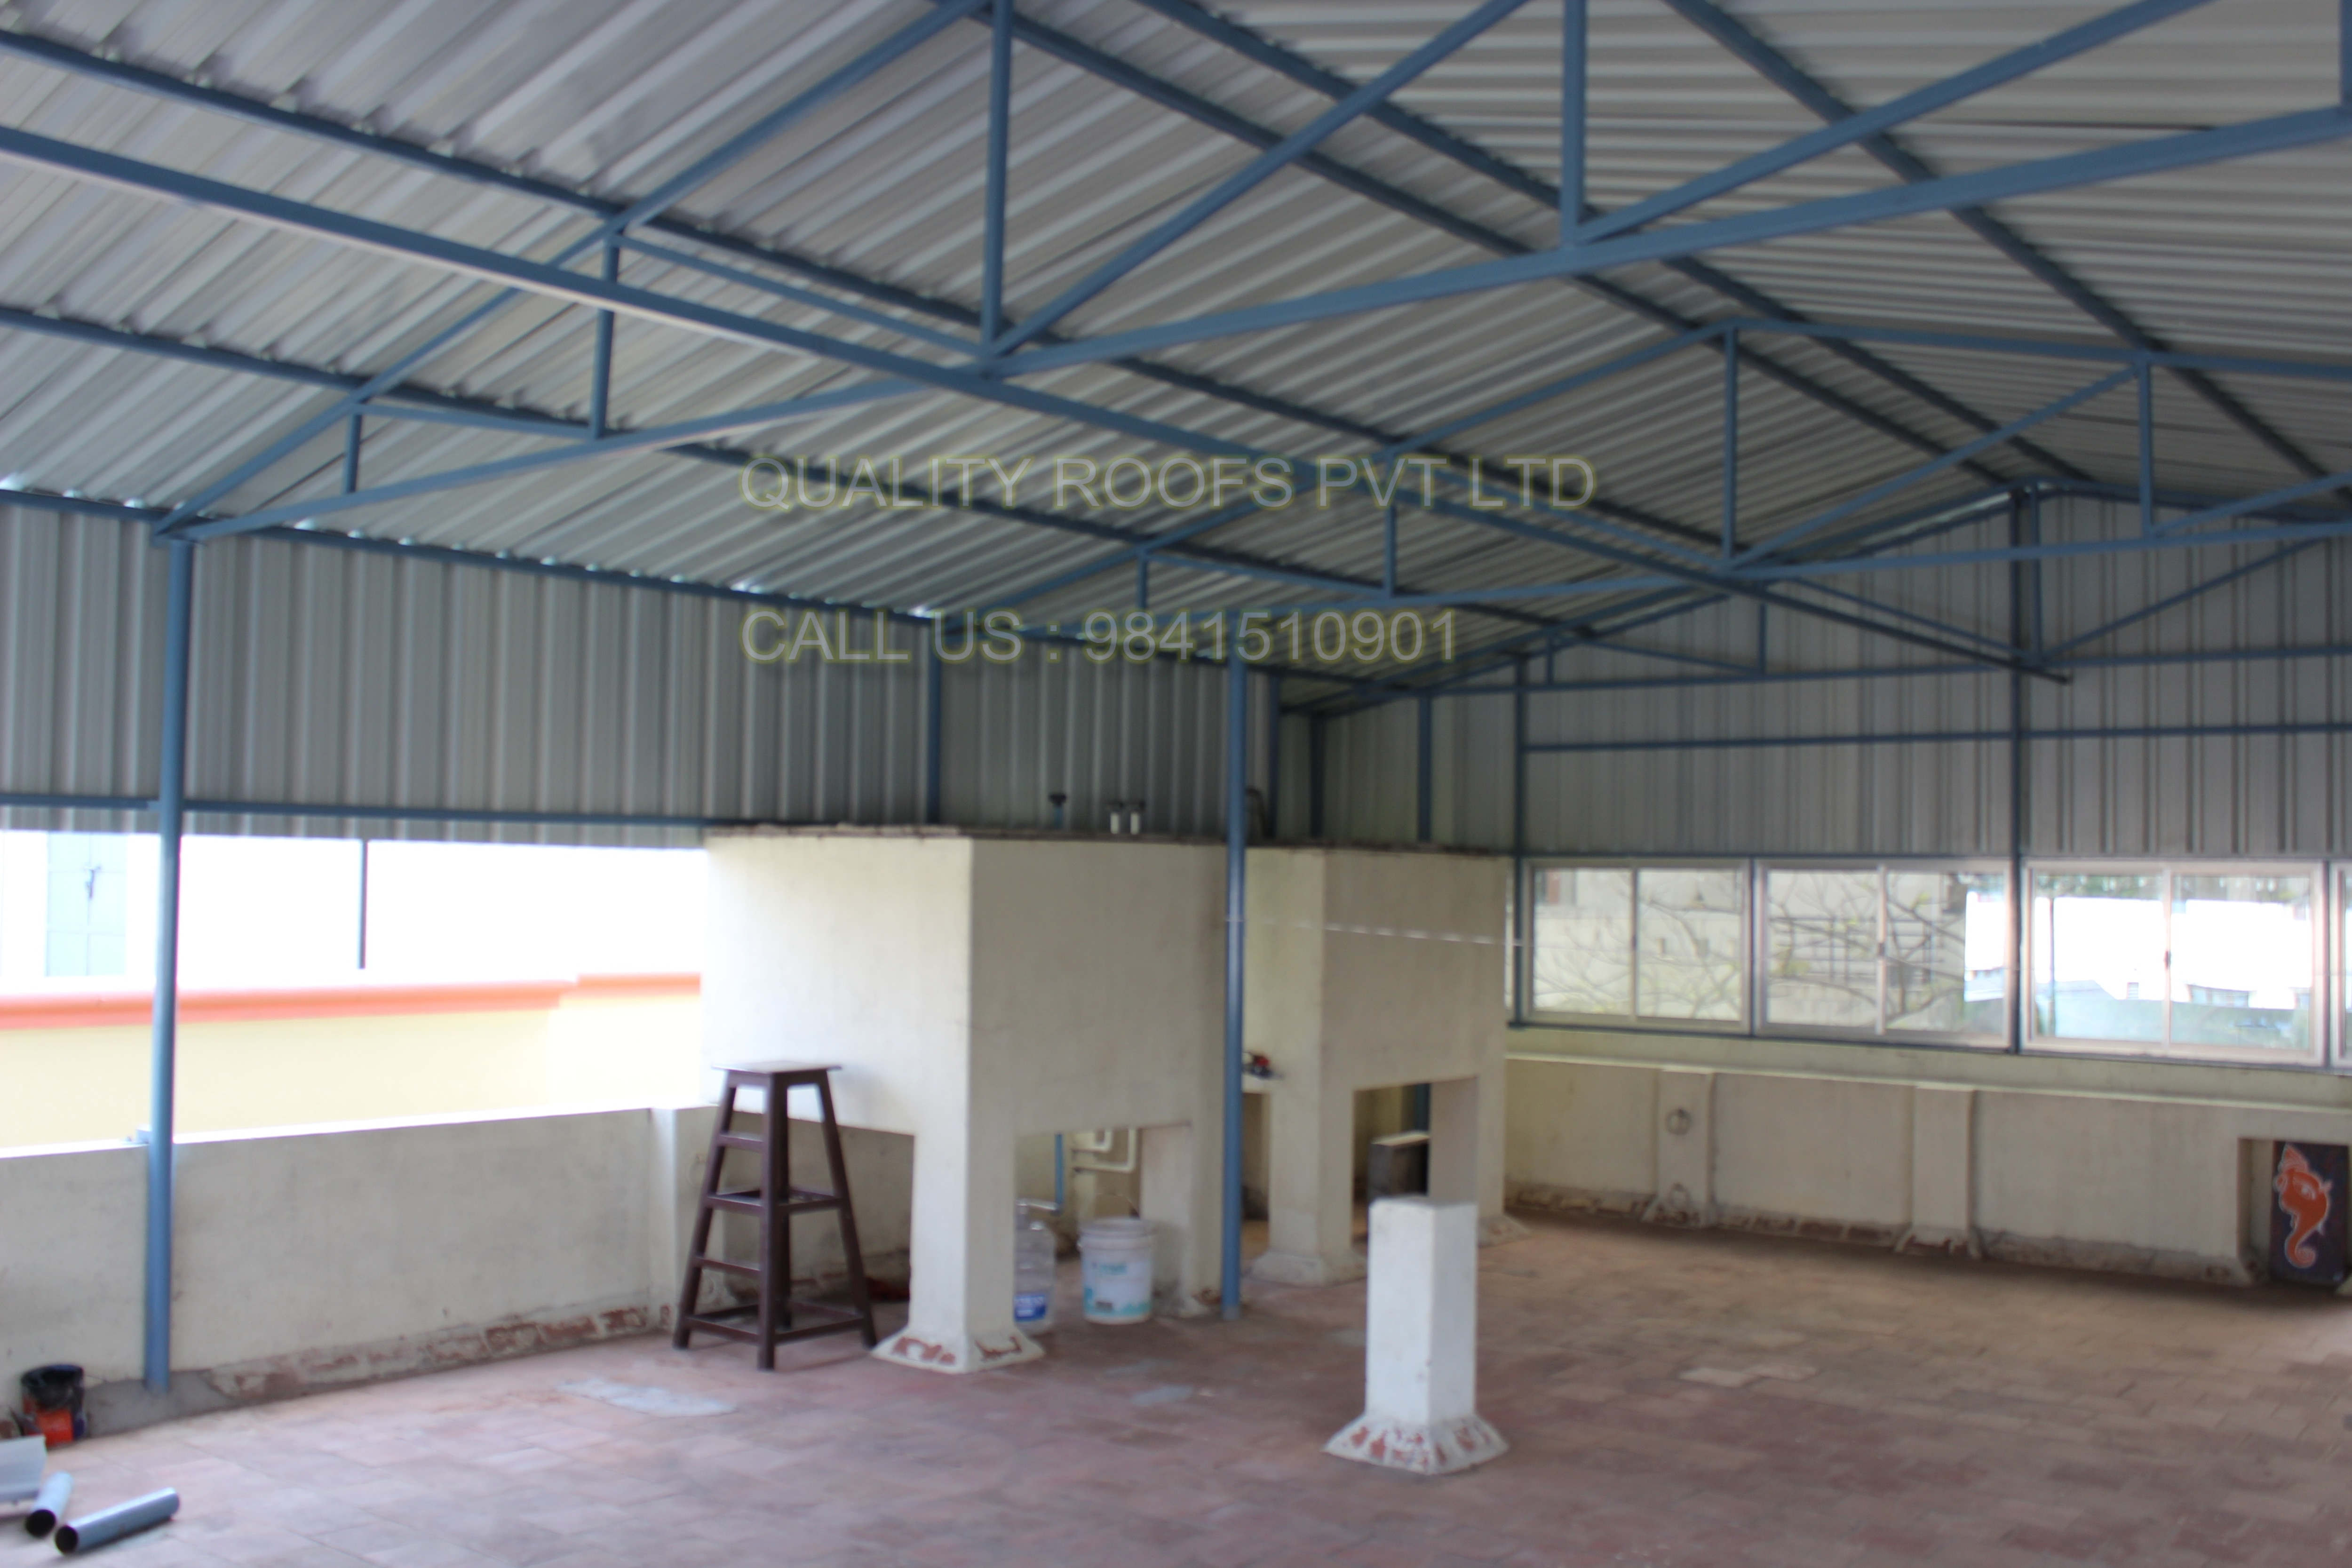 Cool Roofing Sheets In Chennai    We are offered Cool Roofing Sheets In Chennai. Furthermore, the anti-capillary grooves ensure leakage proof, wider valley ensures higher water discharge in case of heavy rains and the accurate thickness, width and length gives a perfect finest to any roof. Our skilled professionals use optimum quality components and advanced technology in line with industry quality standards. To ensure its easy installation, these sheets are well tested on different quality measures. We are the best Industrial Roofing In Chennai.